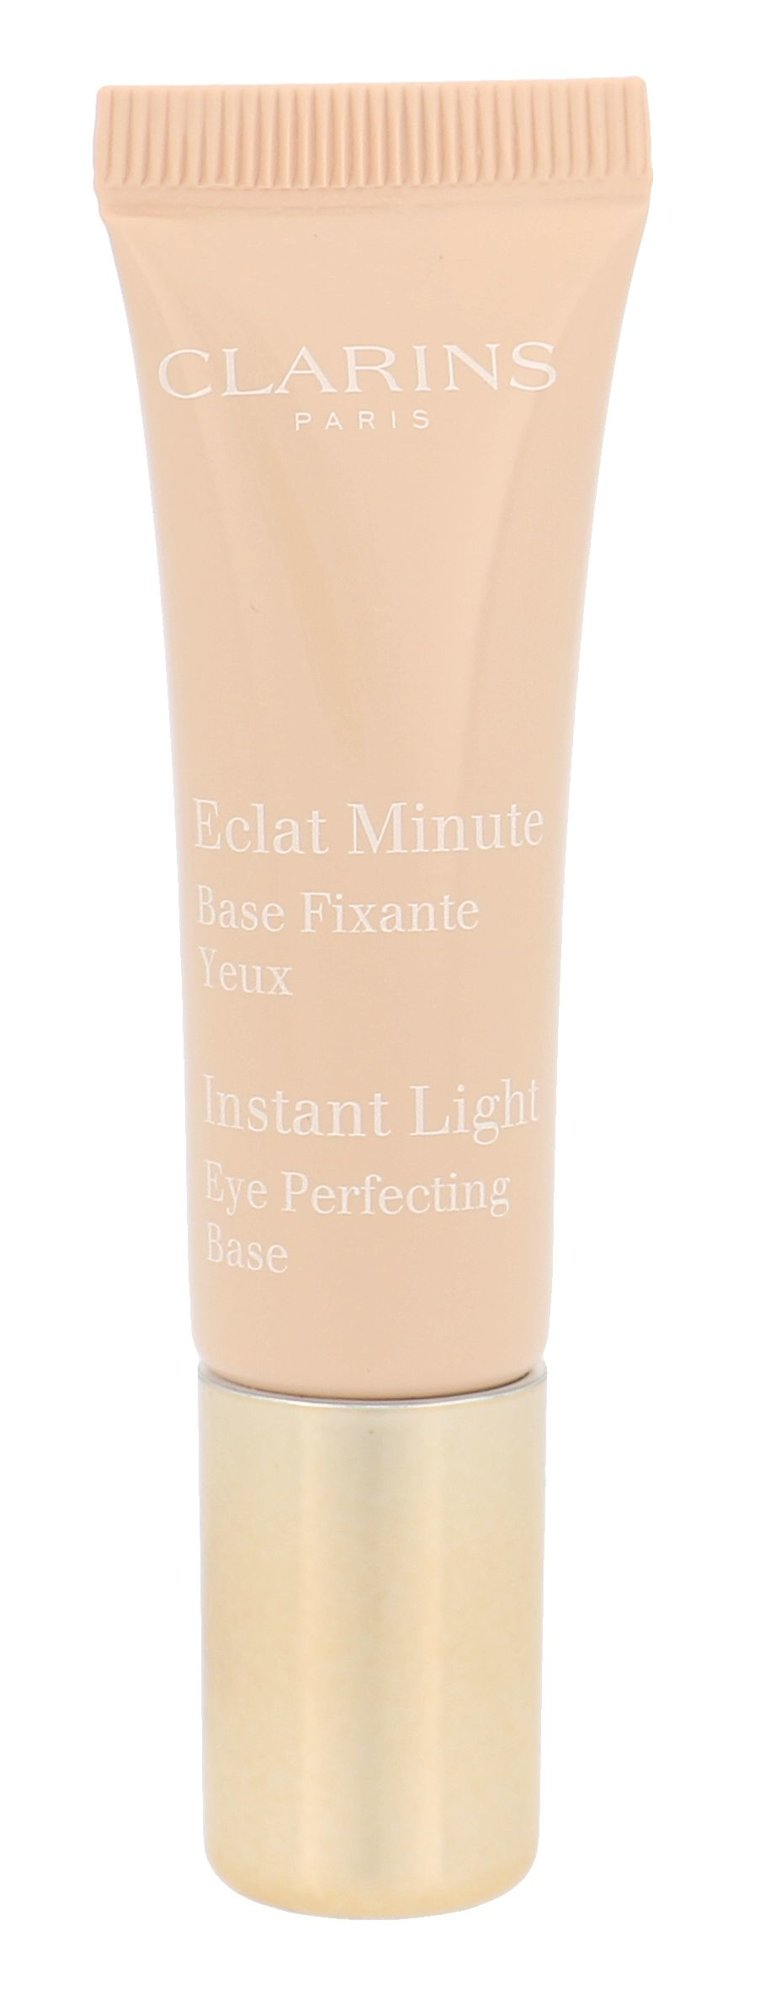 Clarins Instant Light Cosmetic 10ml 00